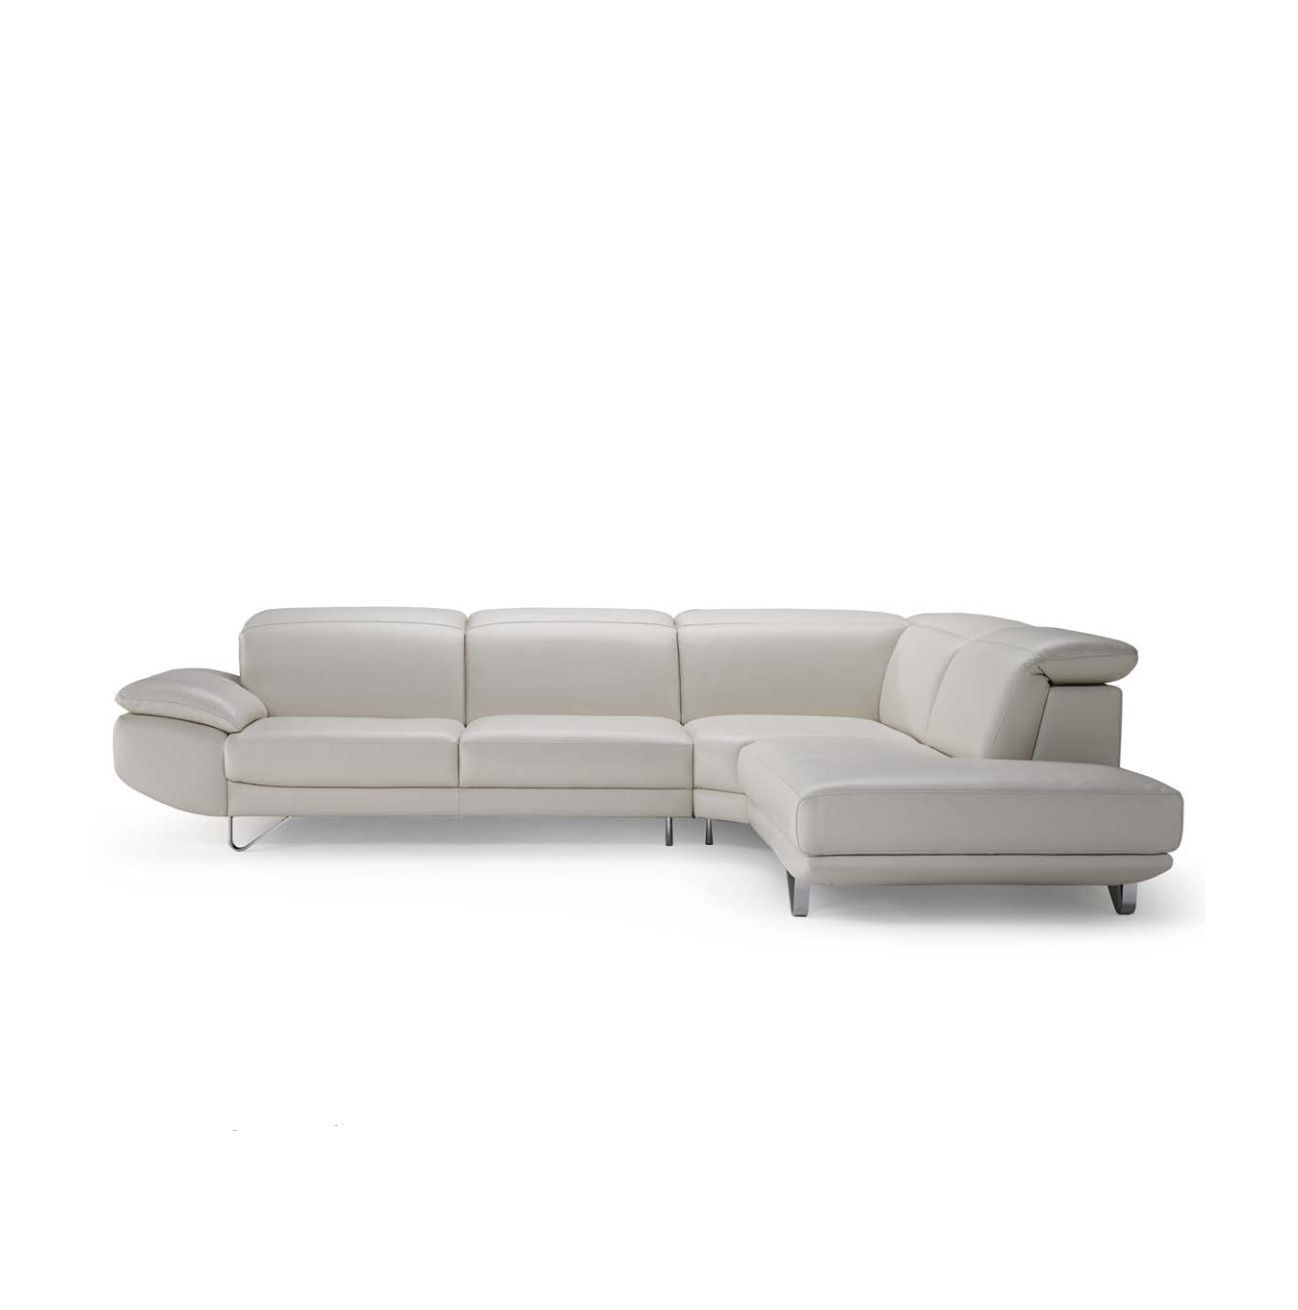 cult sectional leather sofa by natuzzi italia love seat and vero sofas sectionals living modern